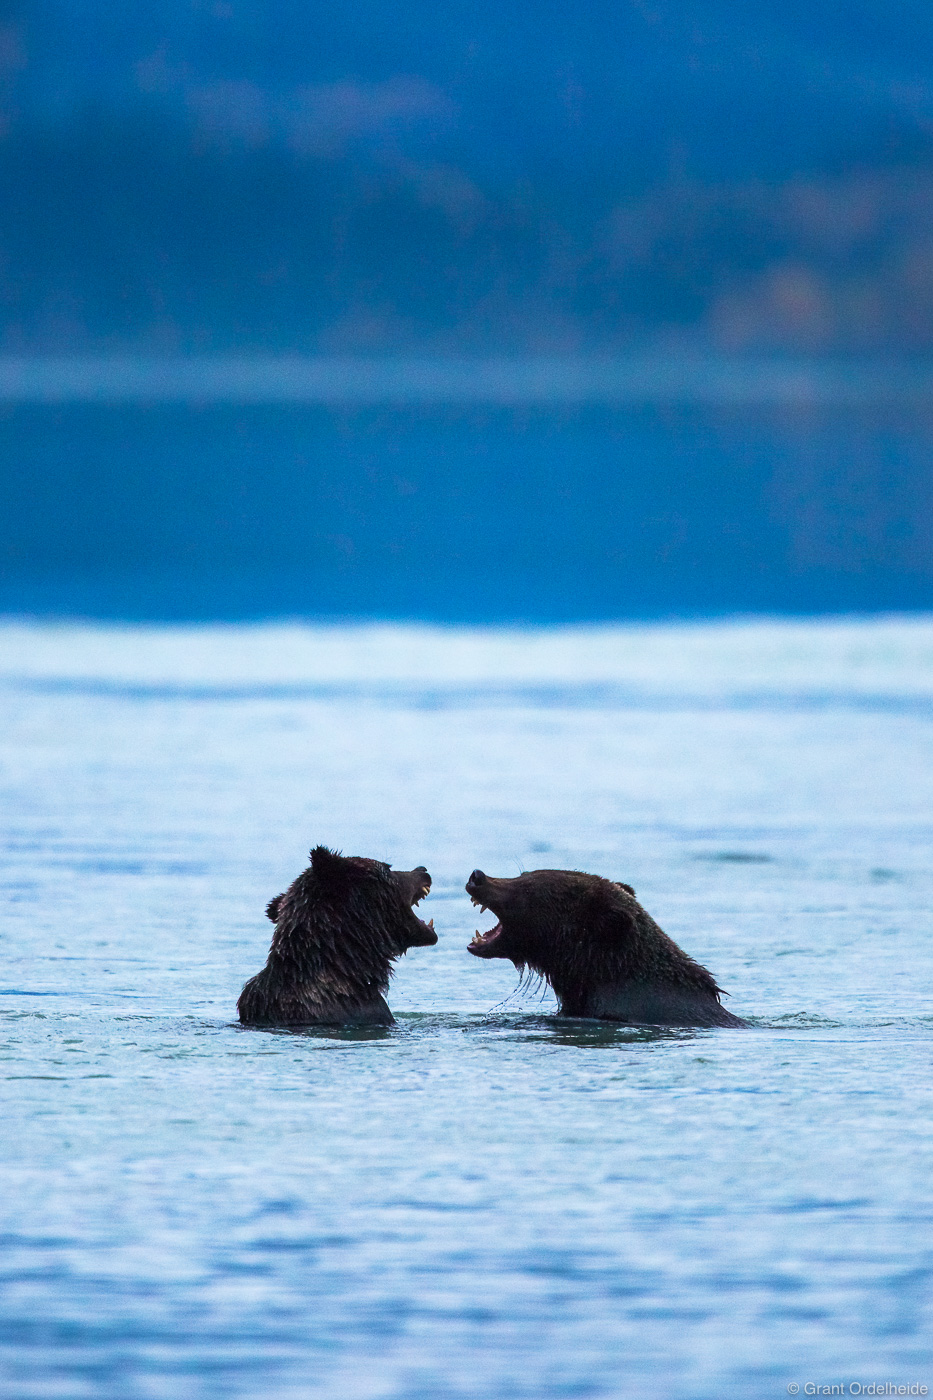 A couple of young grizzly bears (Ursus arctos) playing along the shore of Chilkoot lake near Haines, Alaksa.